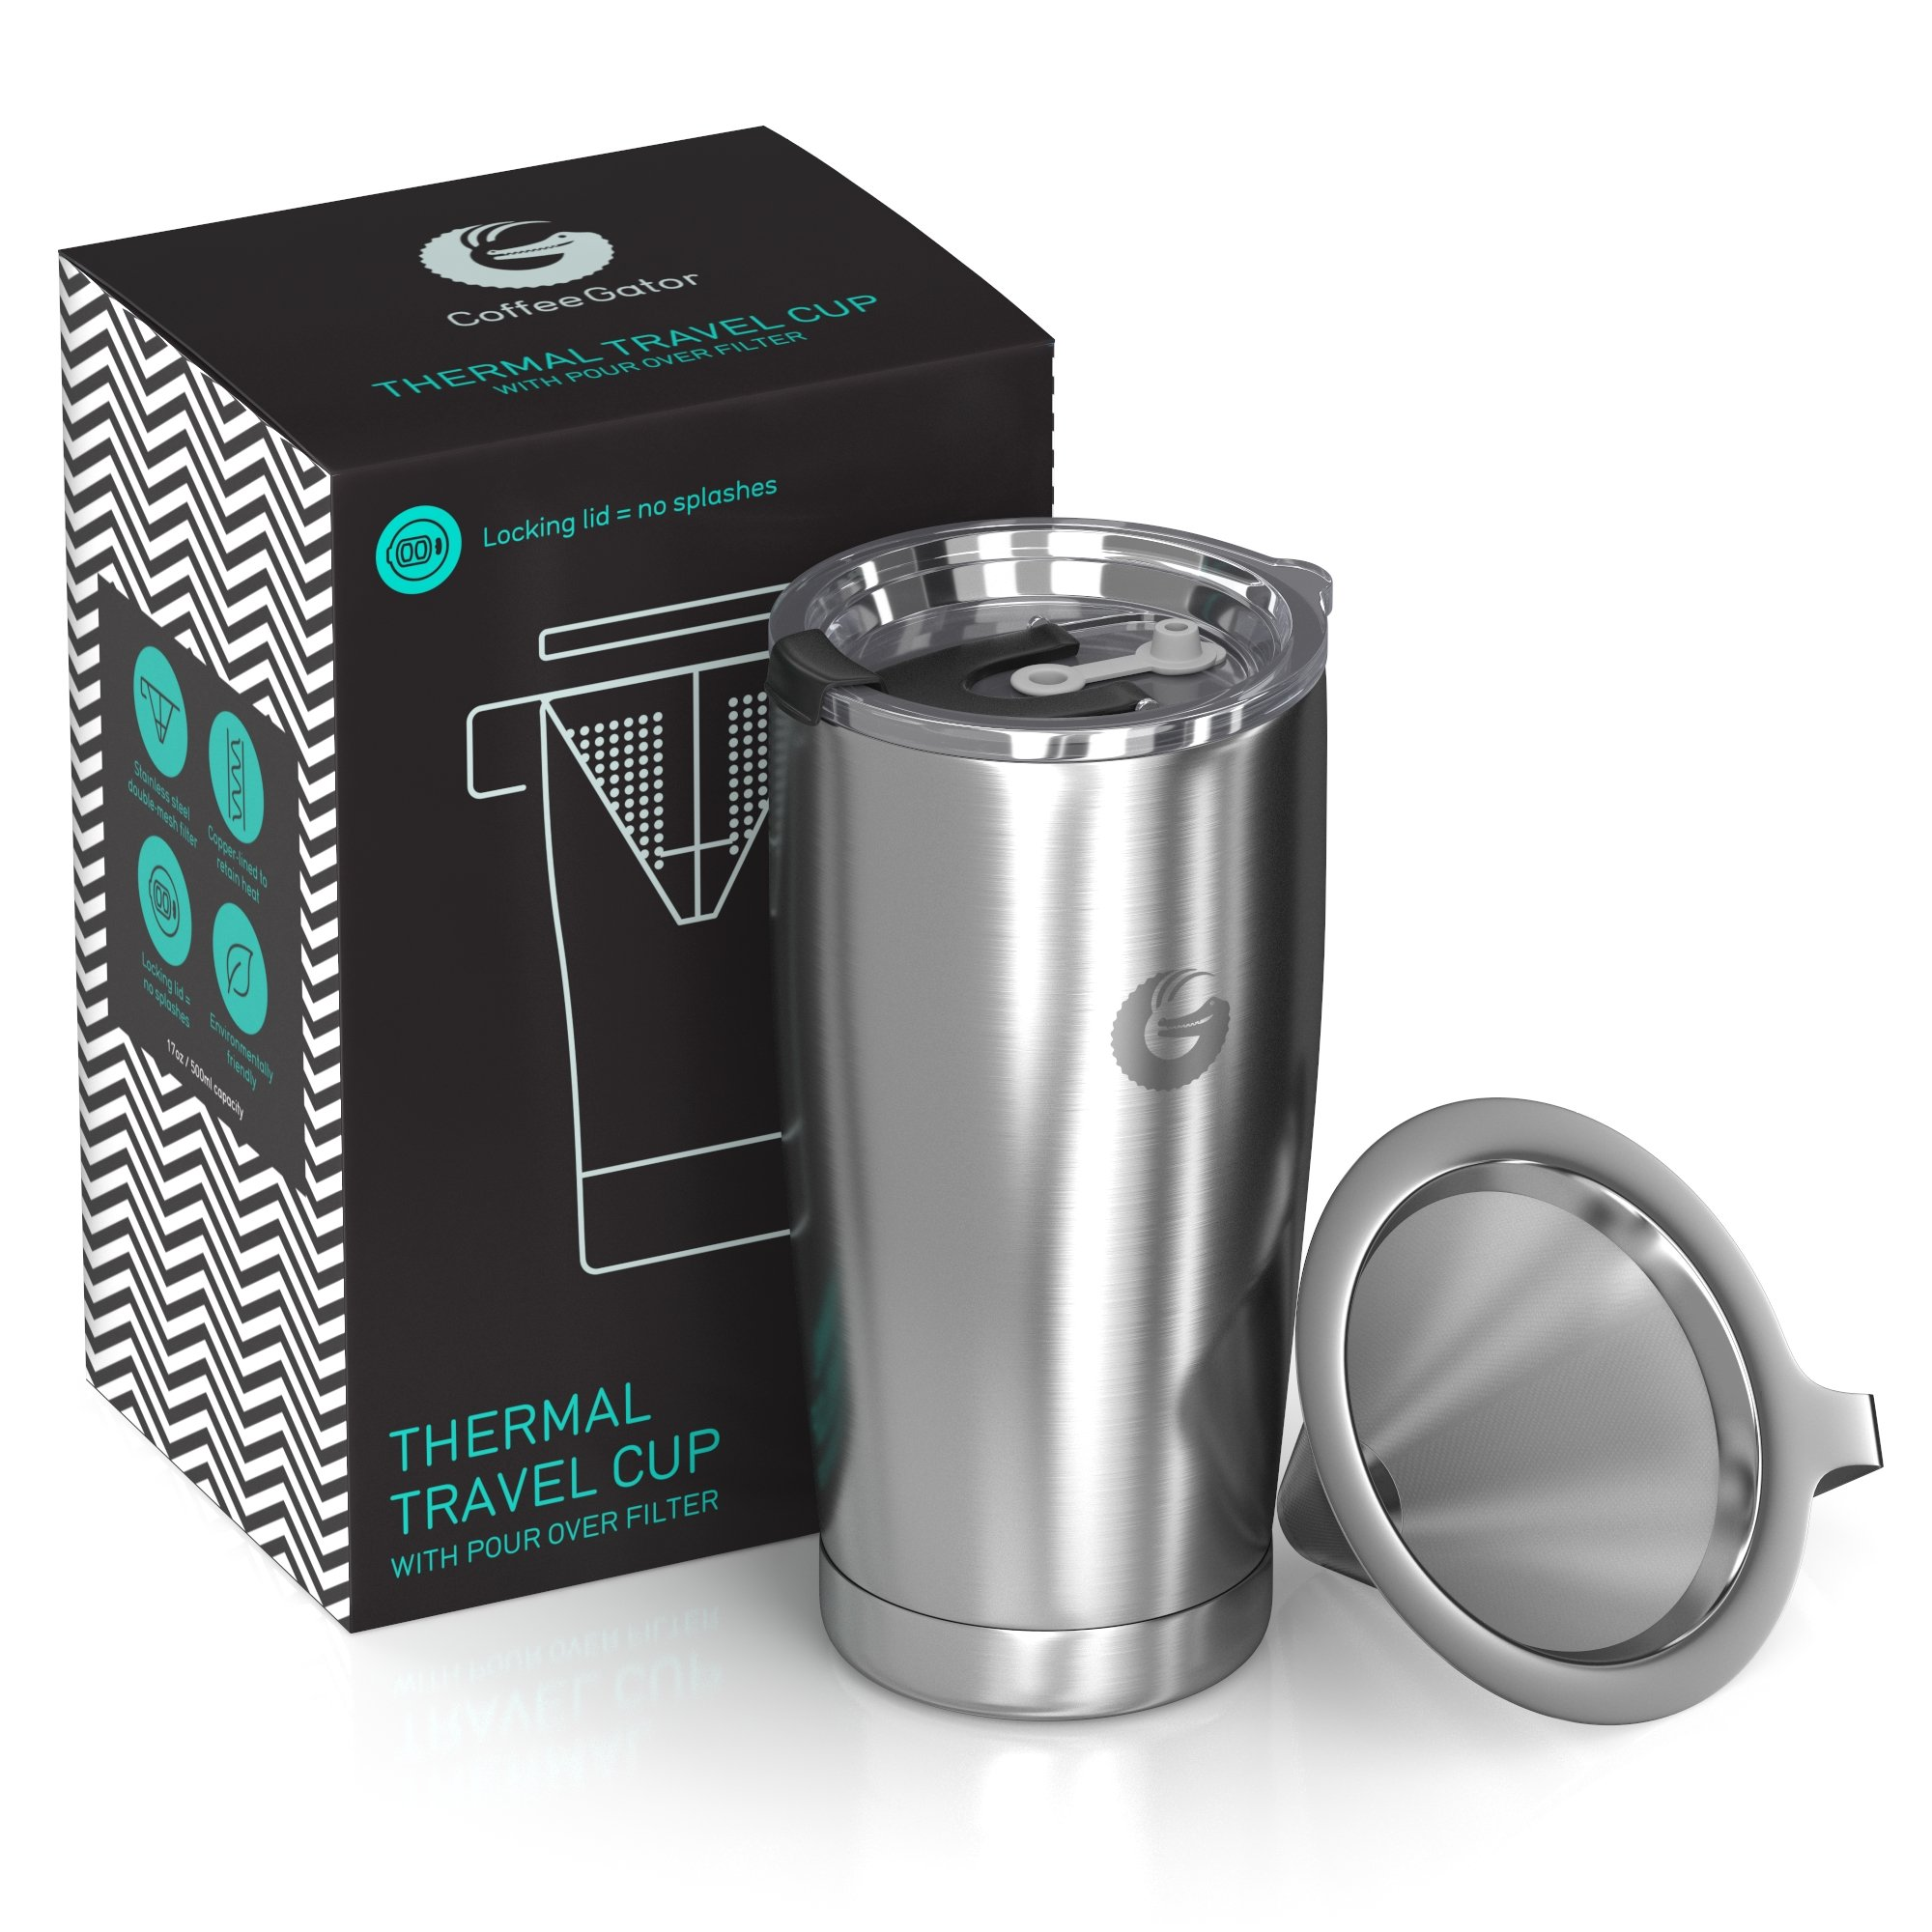 Coffee Gator Pour Over Coffee Maker - All in One Thermal Travel Mug and Brewer - Vacuum Insulated Stainless Steel - 20 ounce - Silver